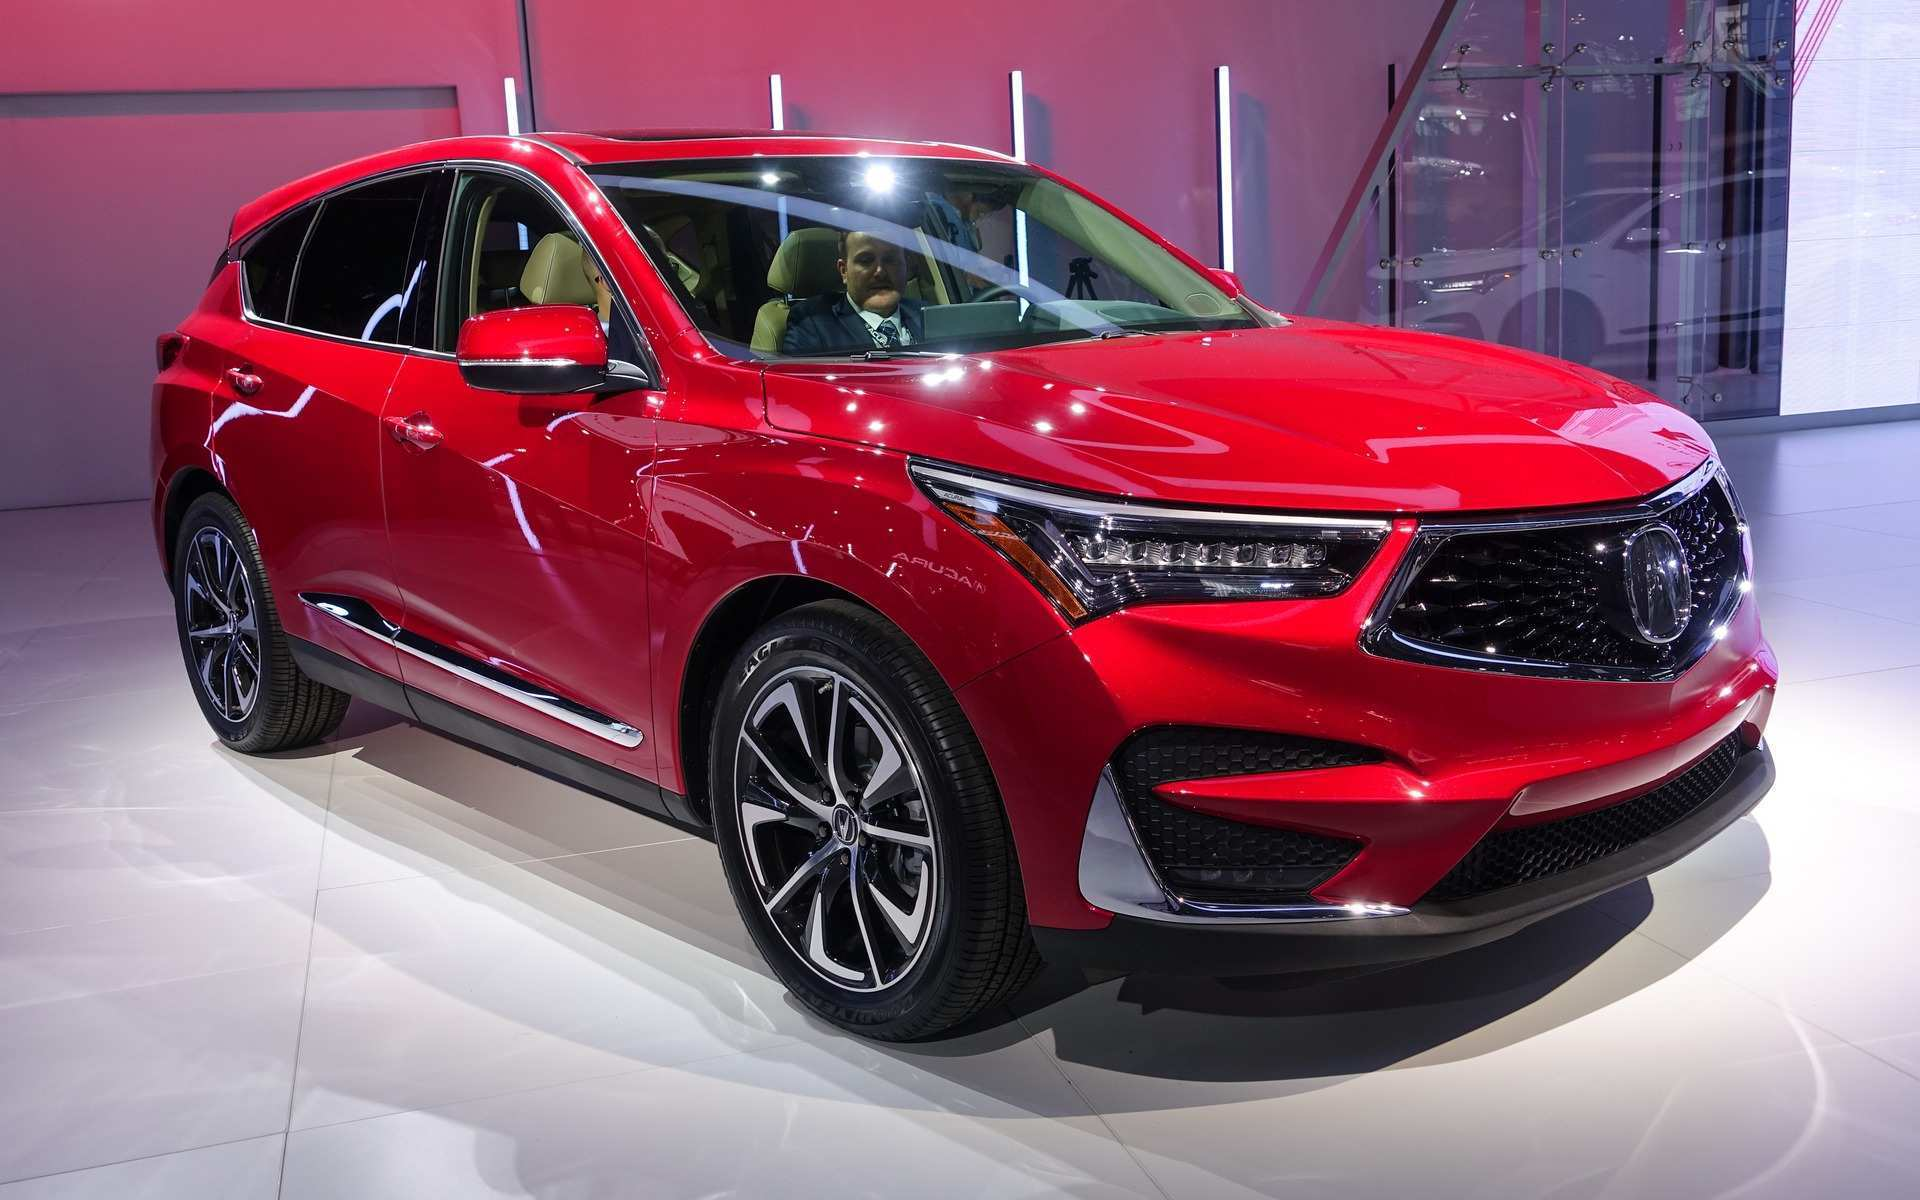 52 The Best 2019 Acura Rdx Concept Configurations